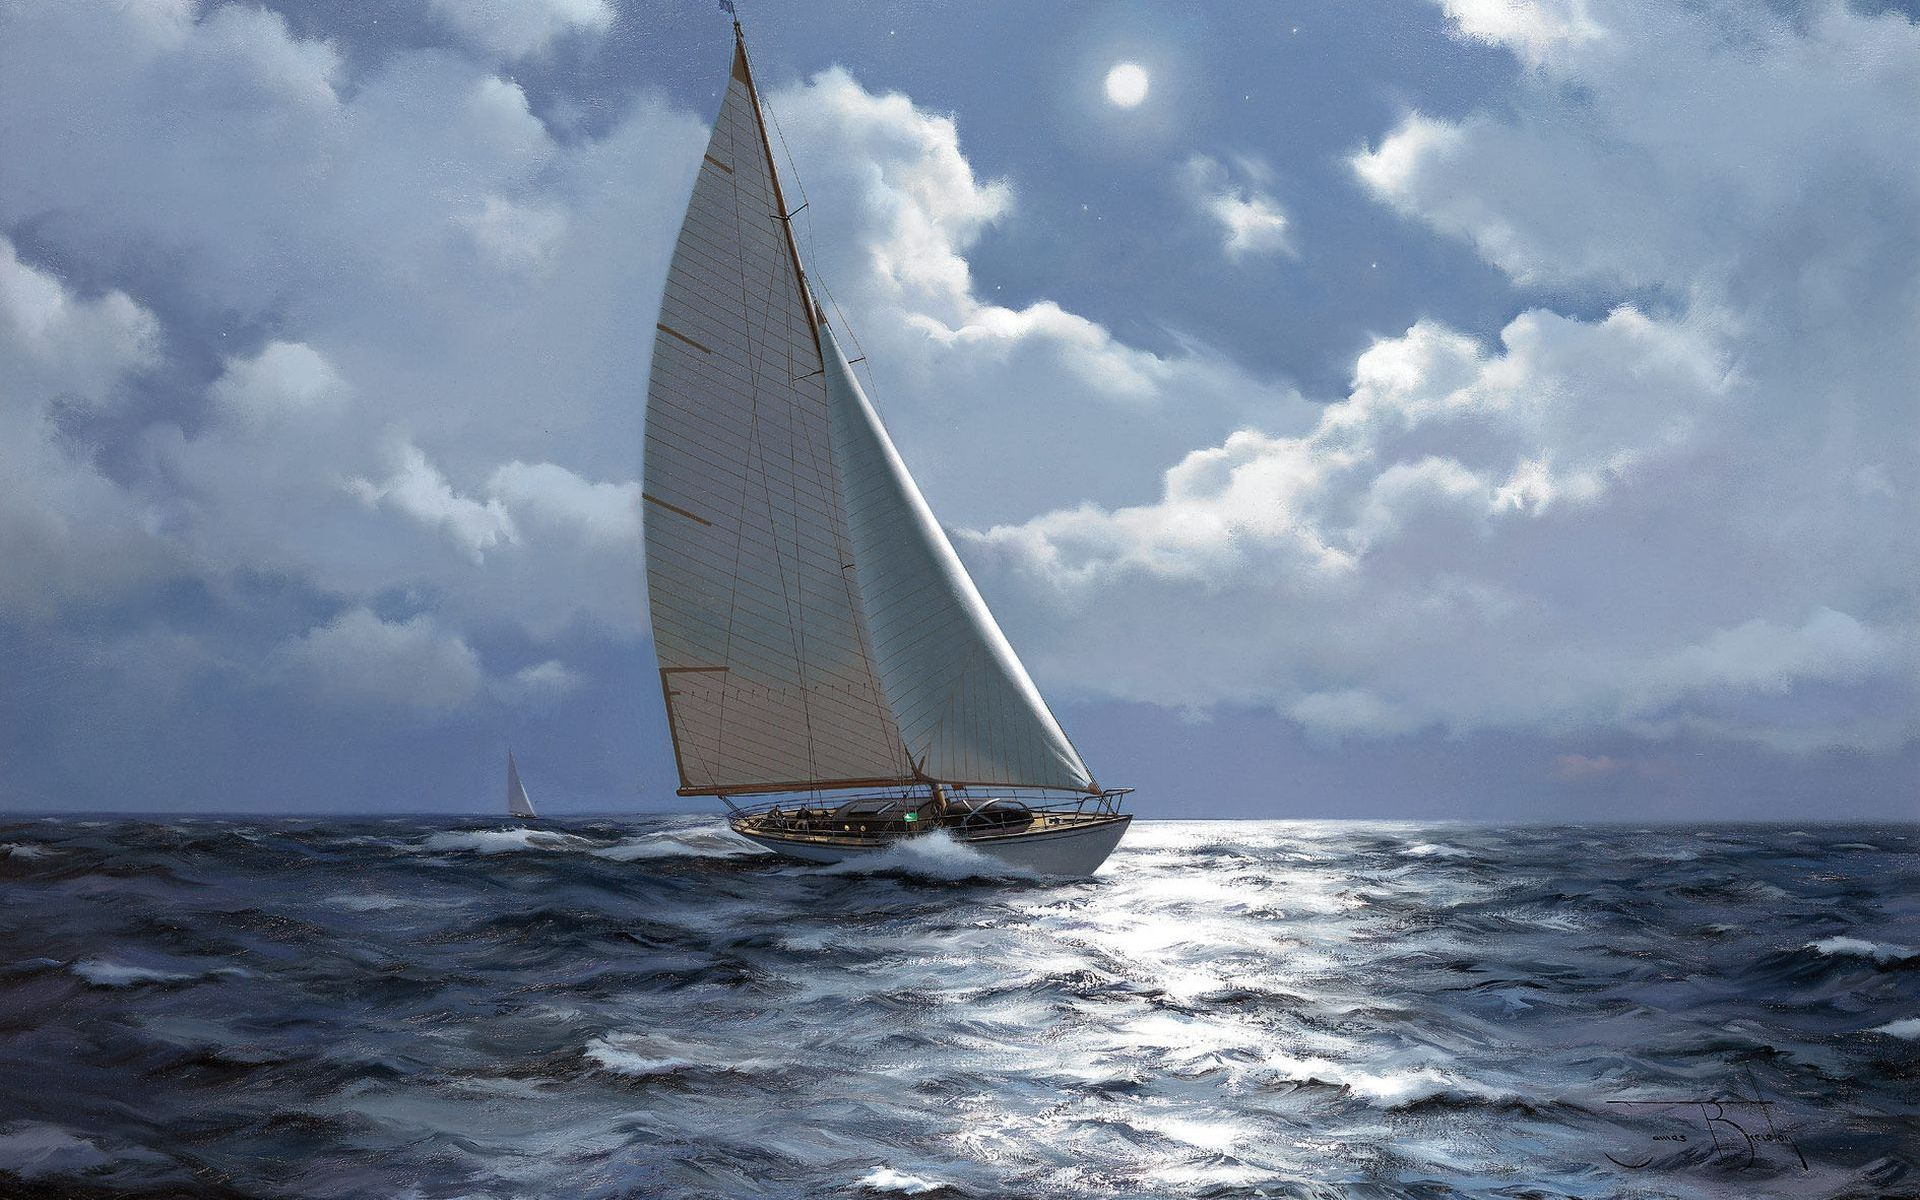 hungry for sailboat wallpaper - photo #22